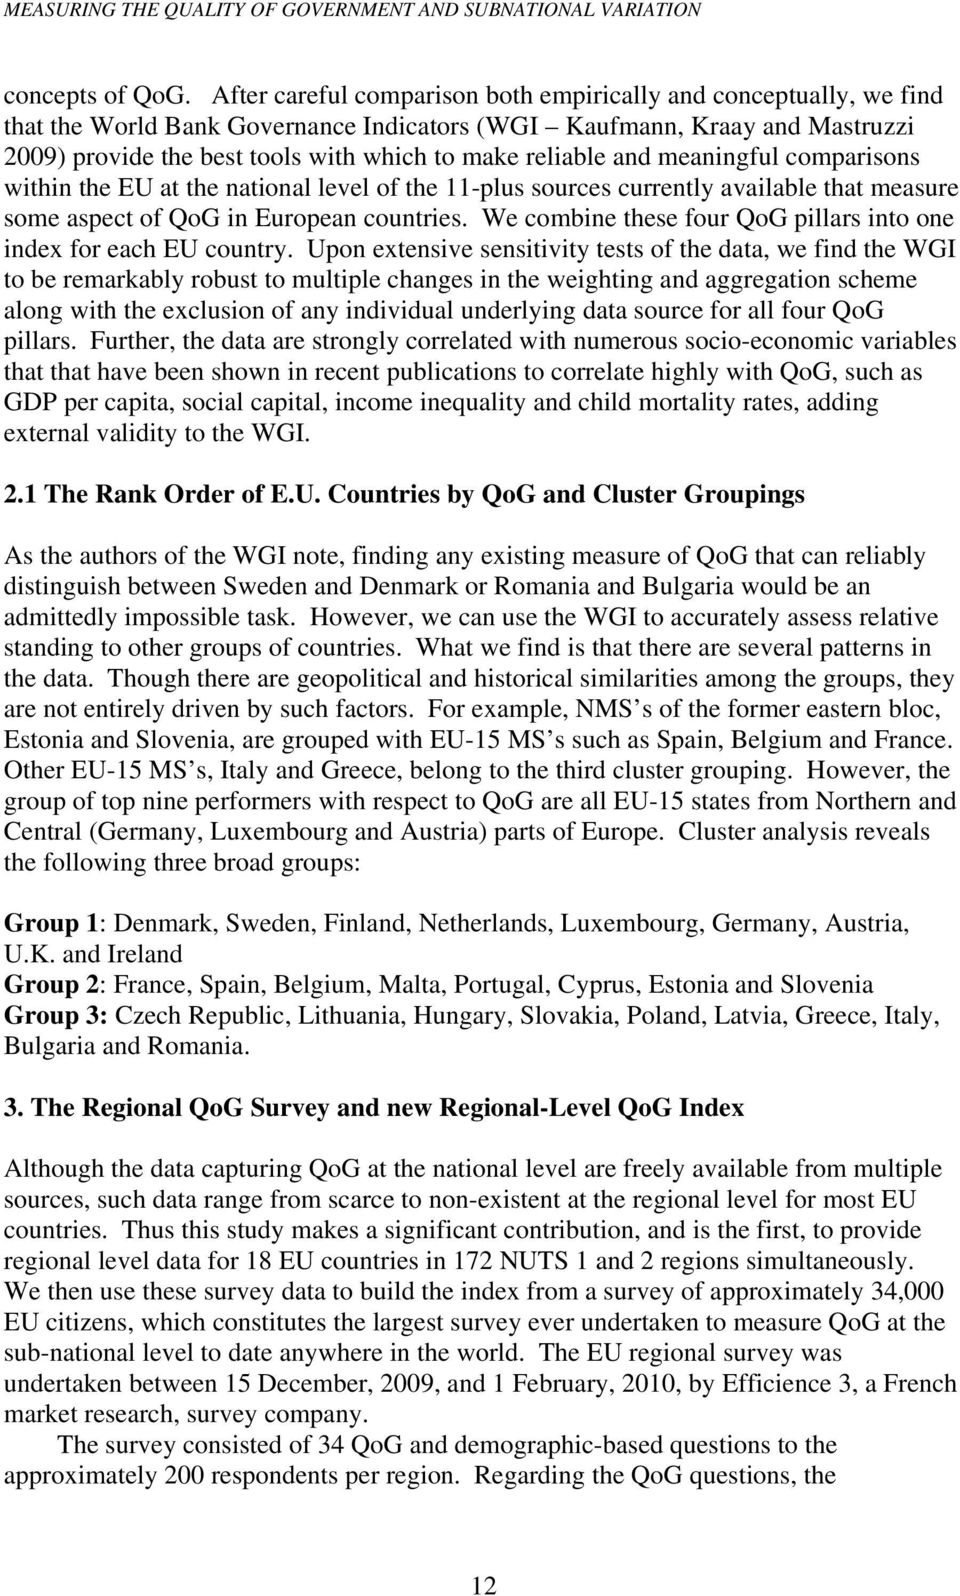 reliable and meaningful comparisons within the EU at the national level of the 11-plus sources currently available that measure some aspect of QoG in European countries.